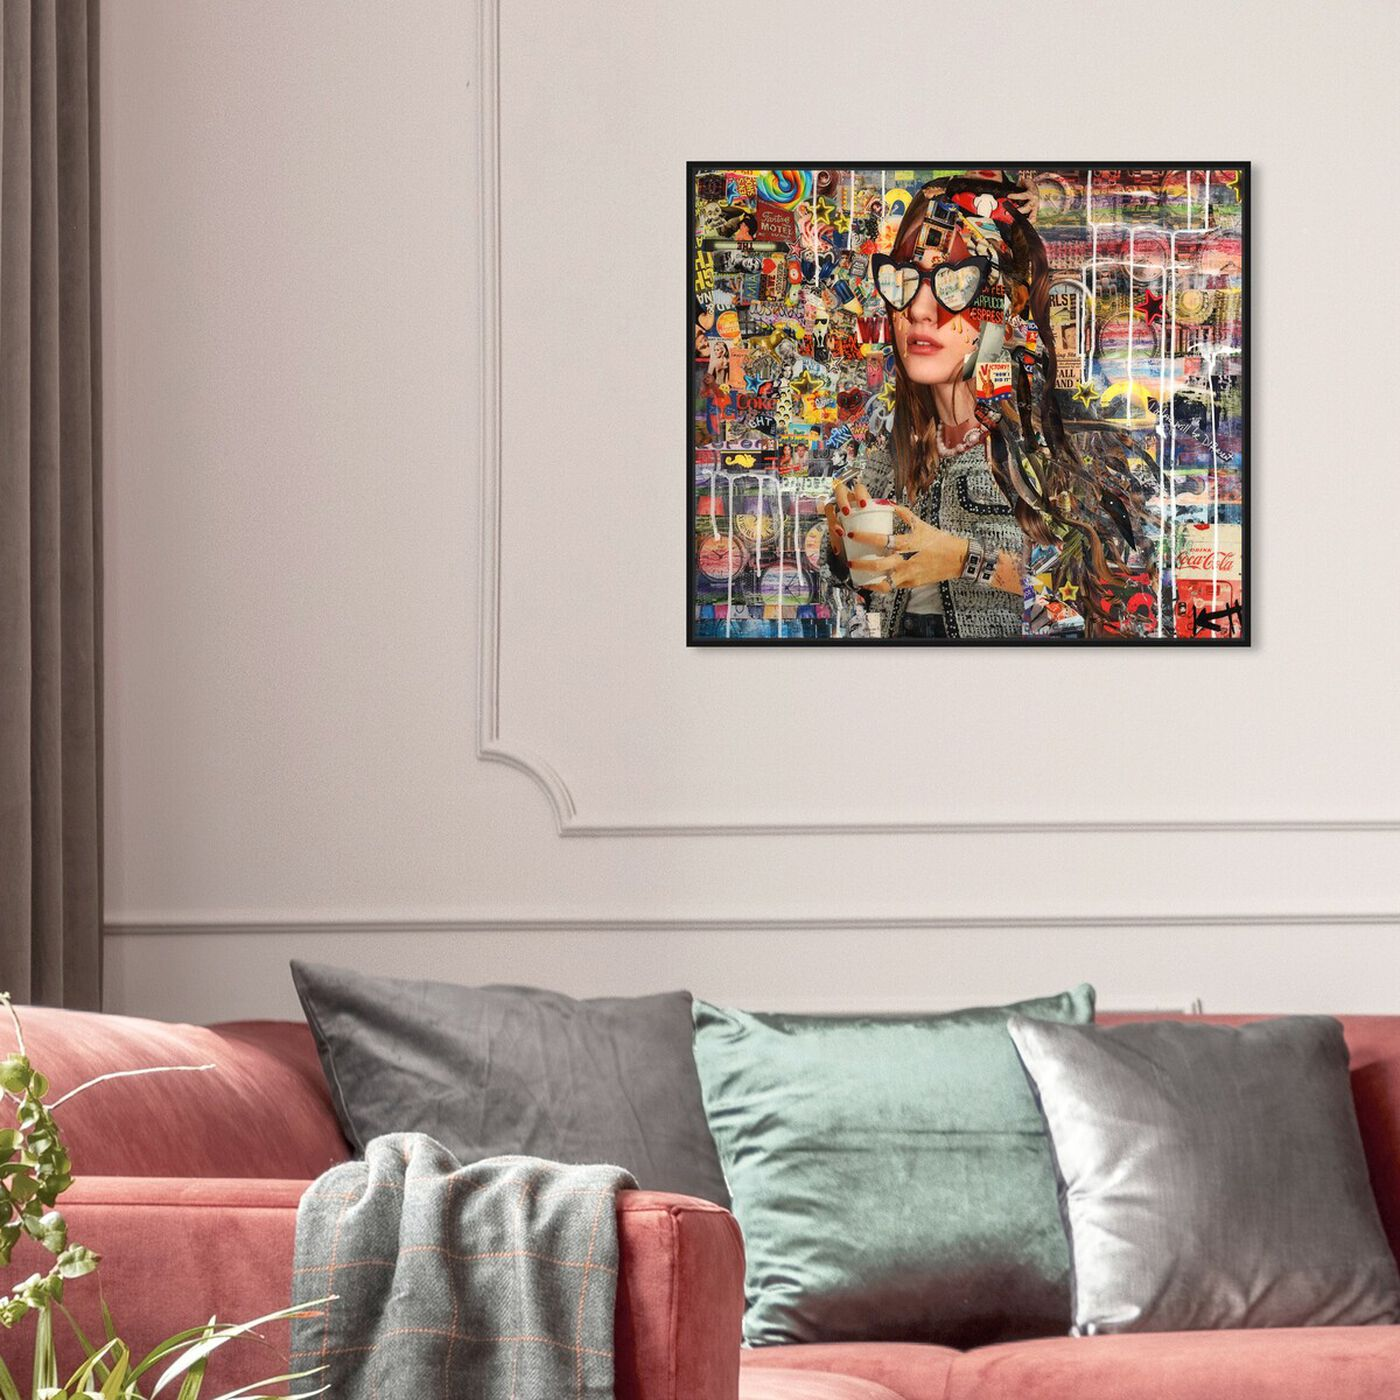 Hanging view of Katy Hirschfeld - Heart Eyes featuring fashion and glam and portraits art.